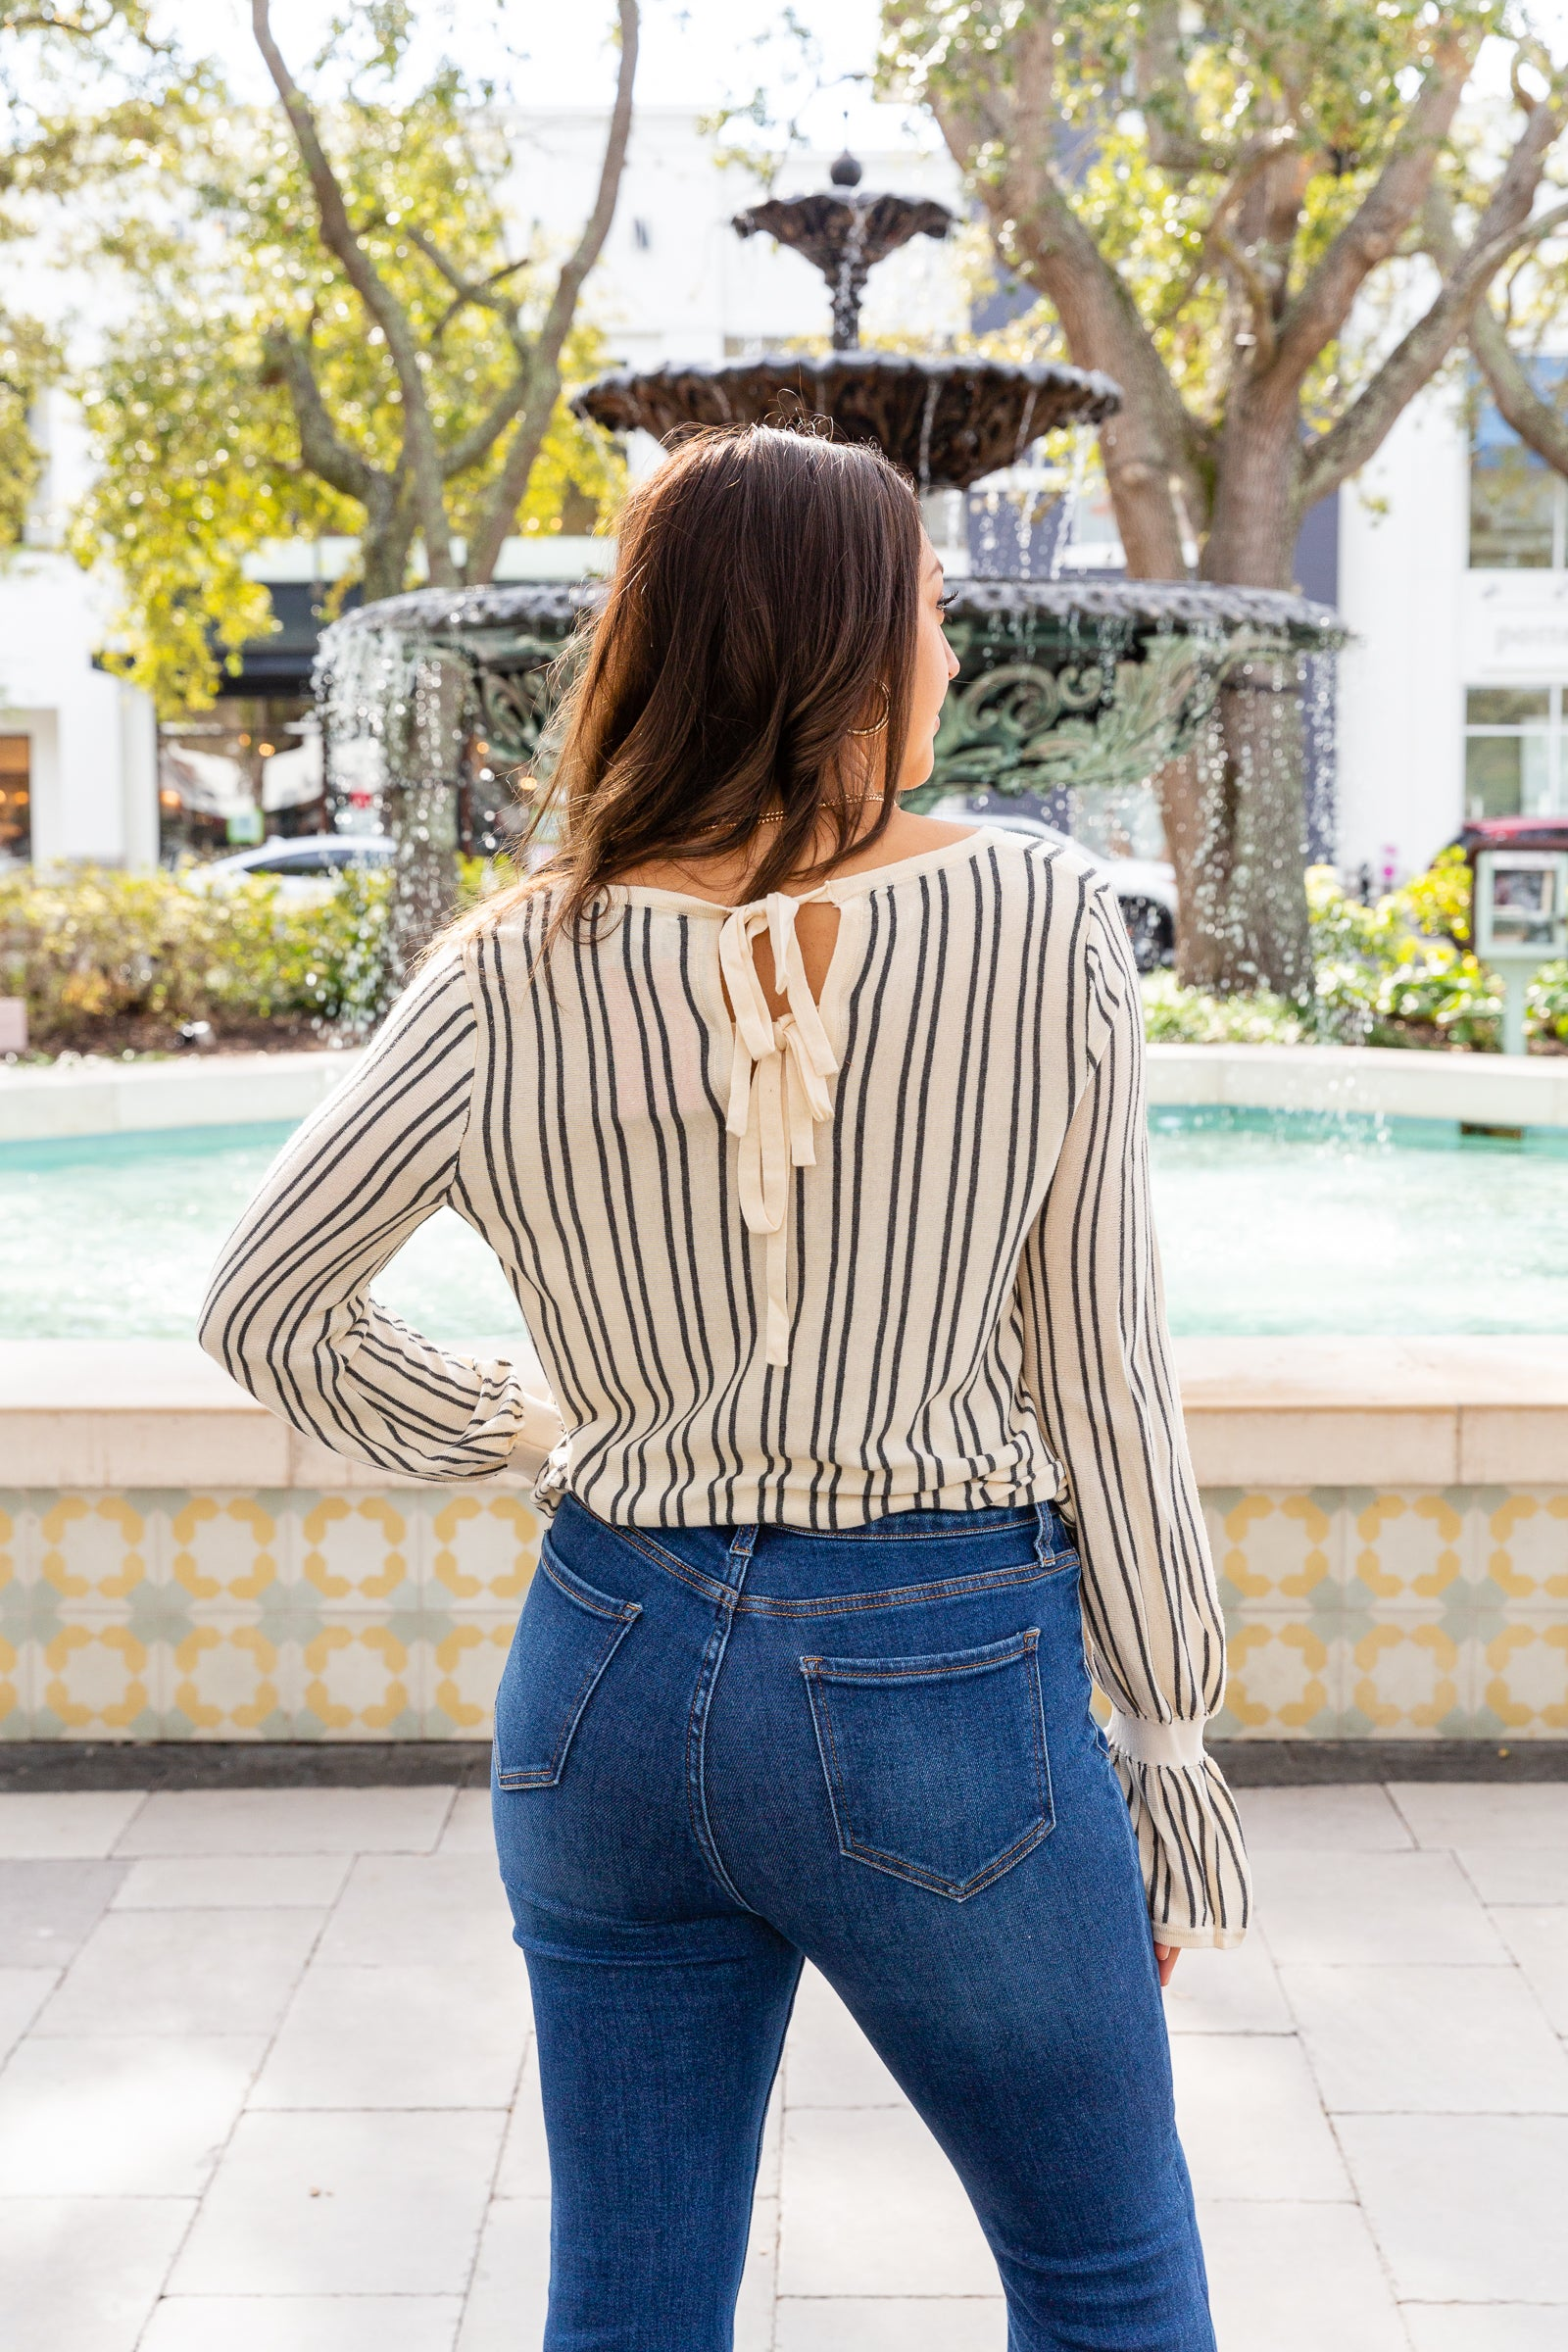 Stripes go down the lightweight fabric of this patterned sweater. Long elastic ruffle cuffed sleeves attach to a crew neckline on a relaxed-fit and loose bodice silhouette.